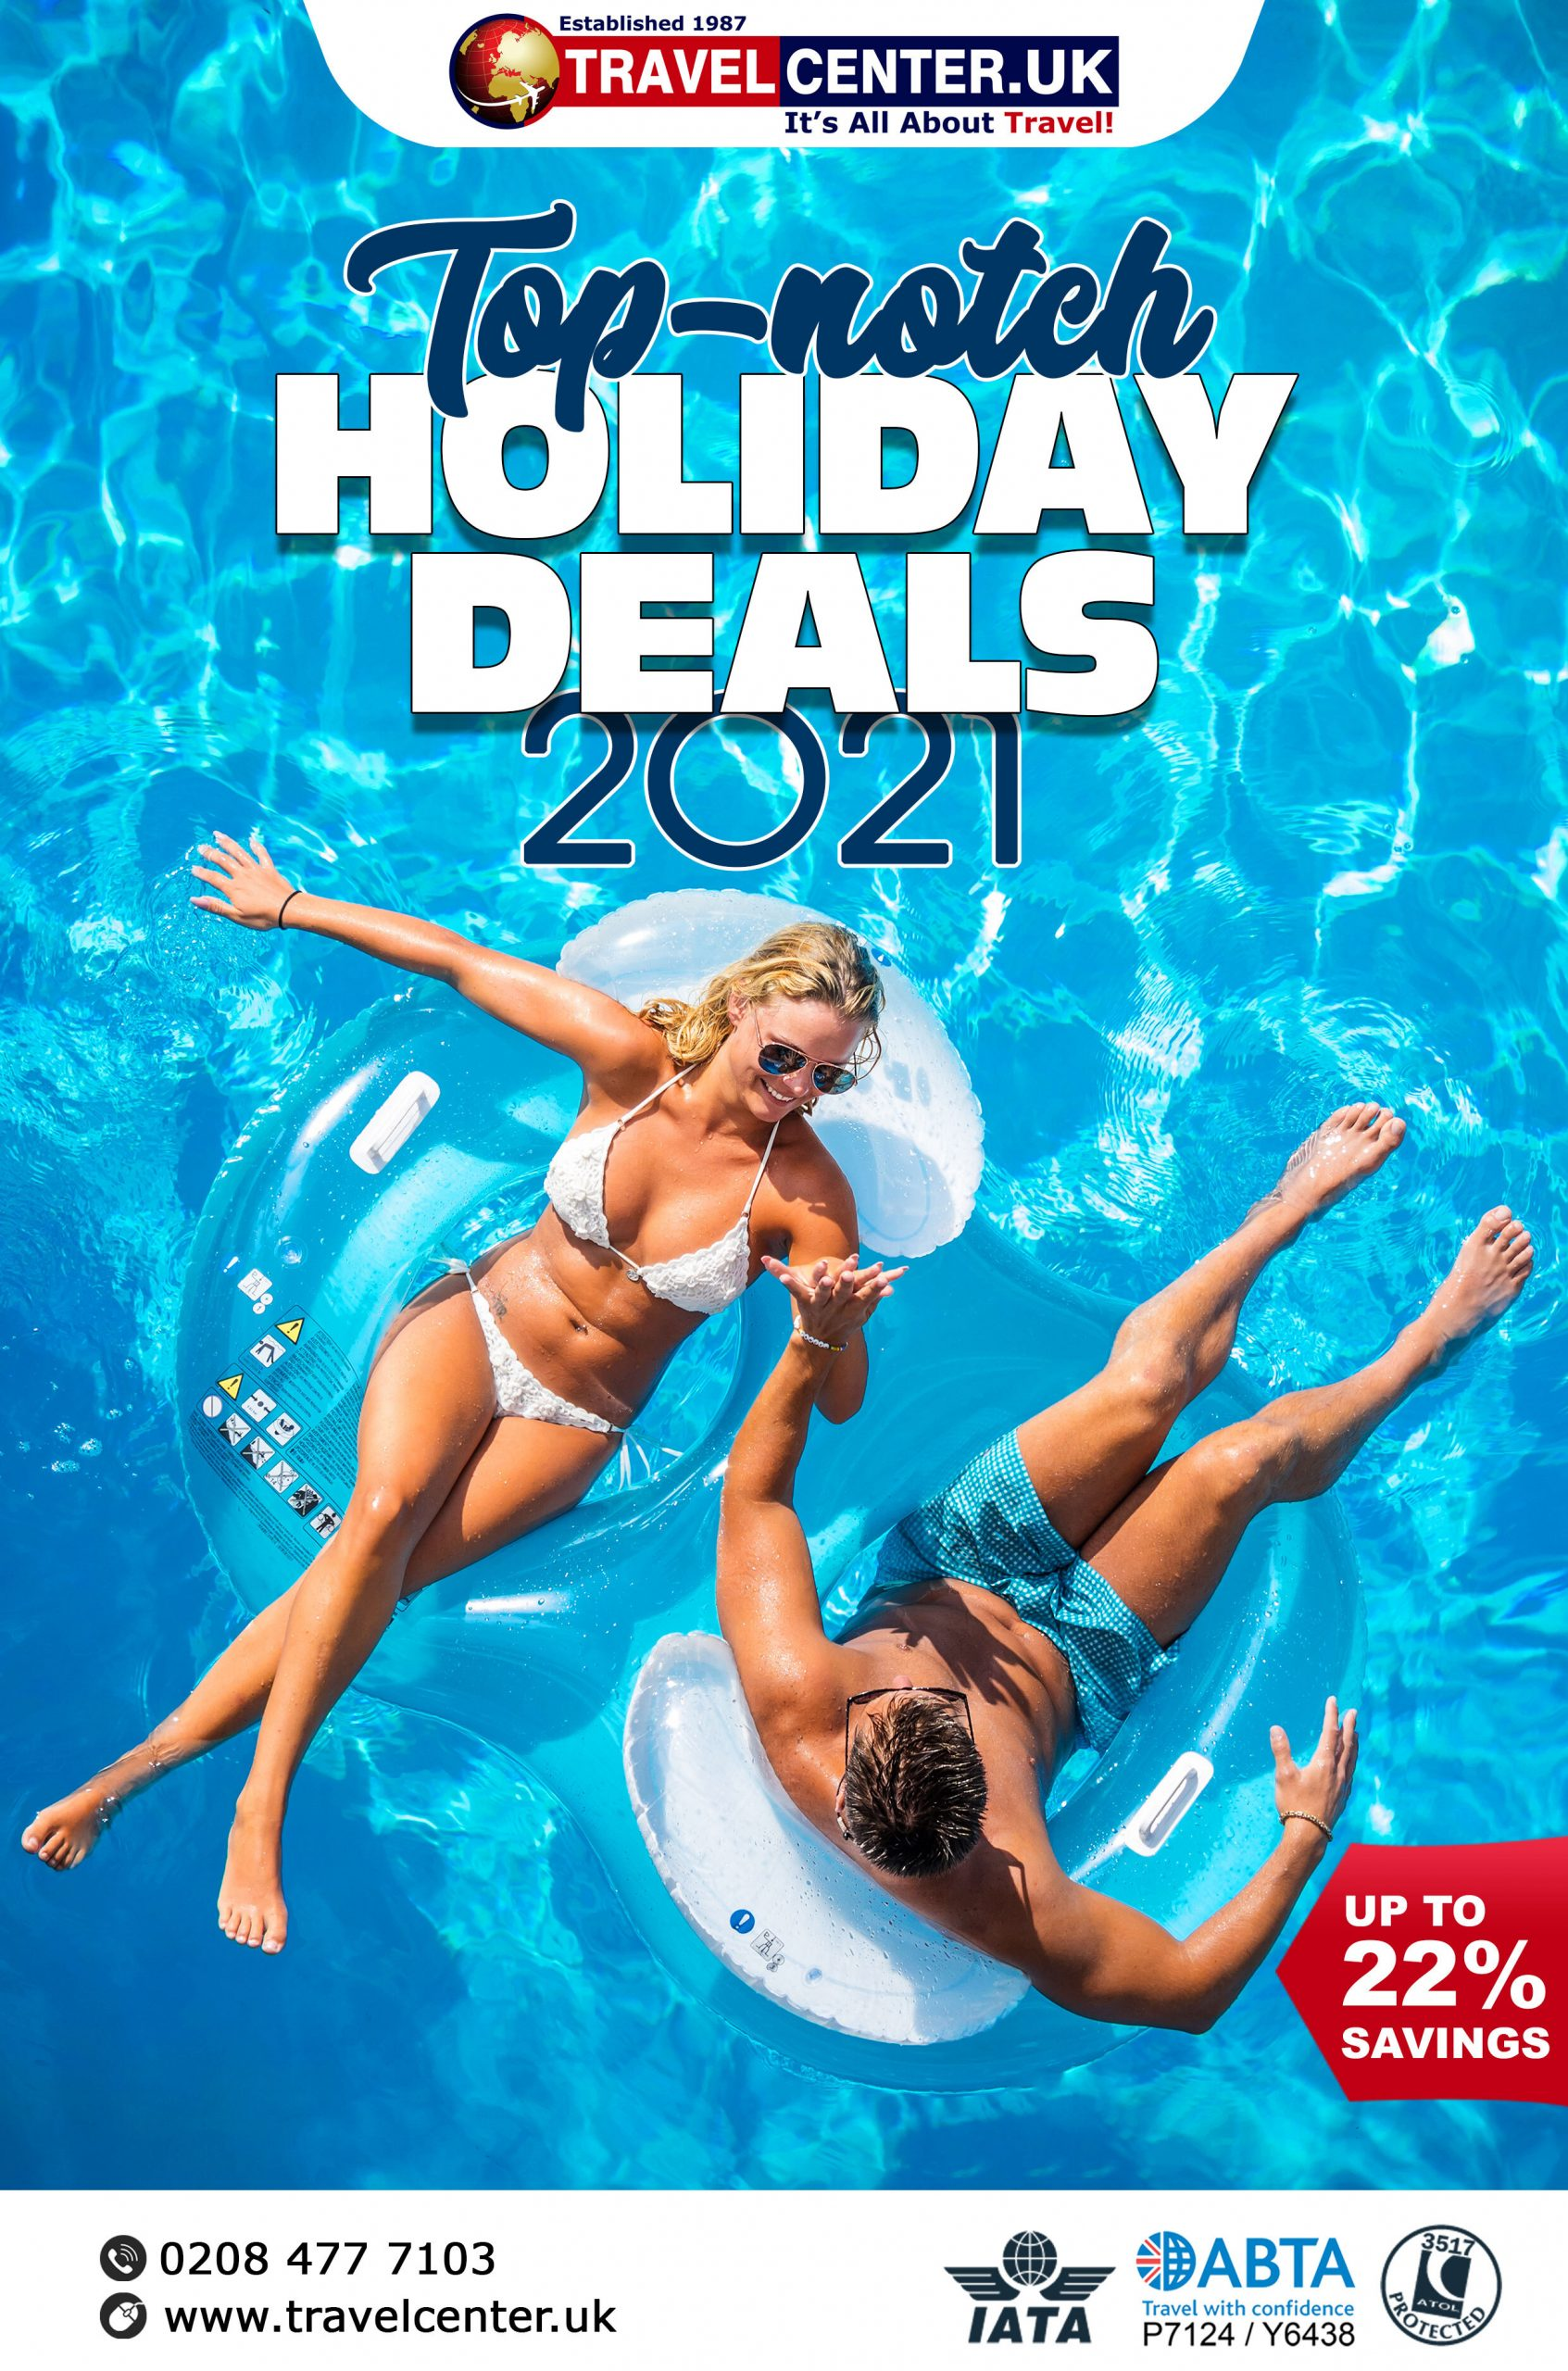 Top-notch Holiday deals 2021